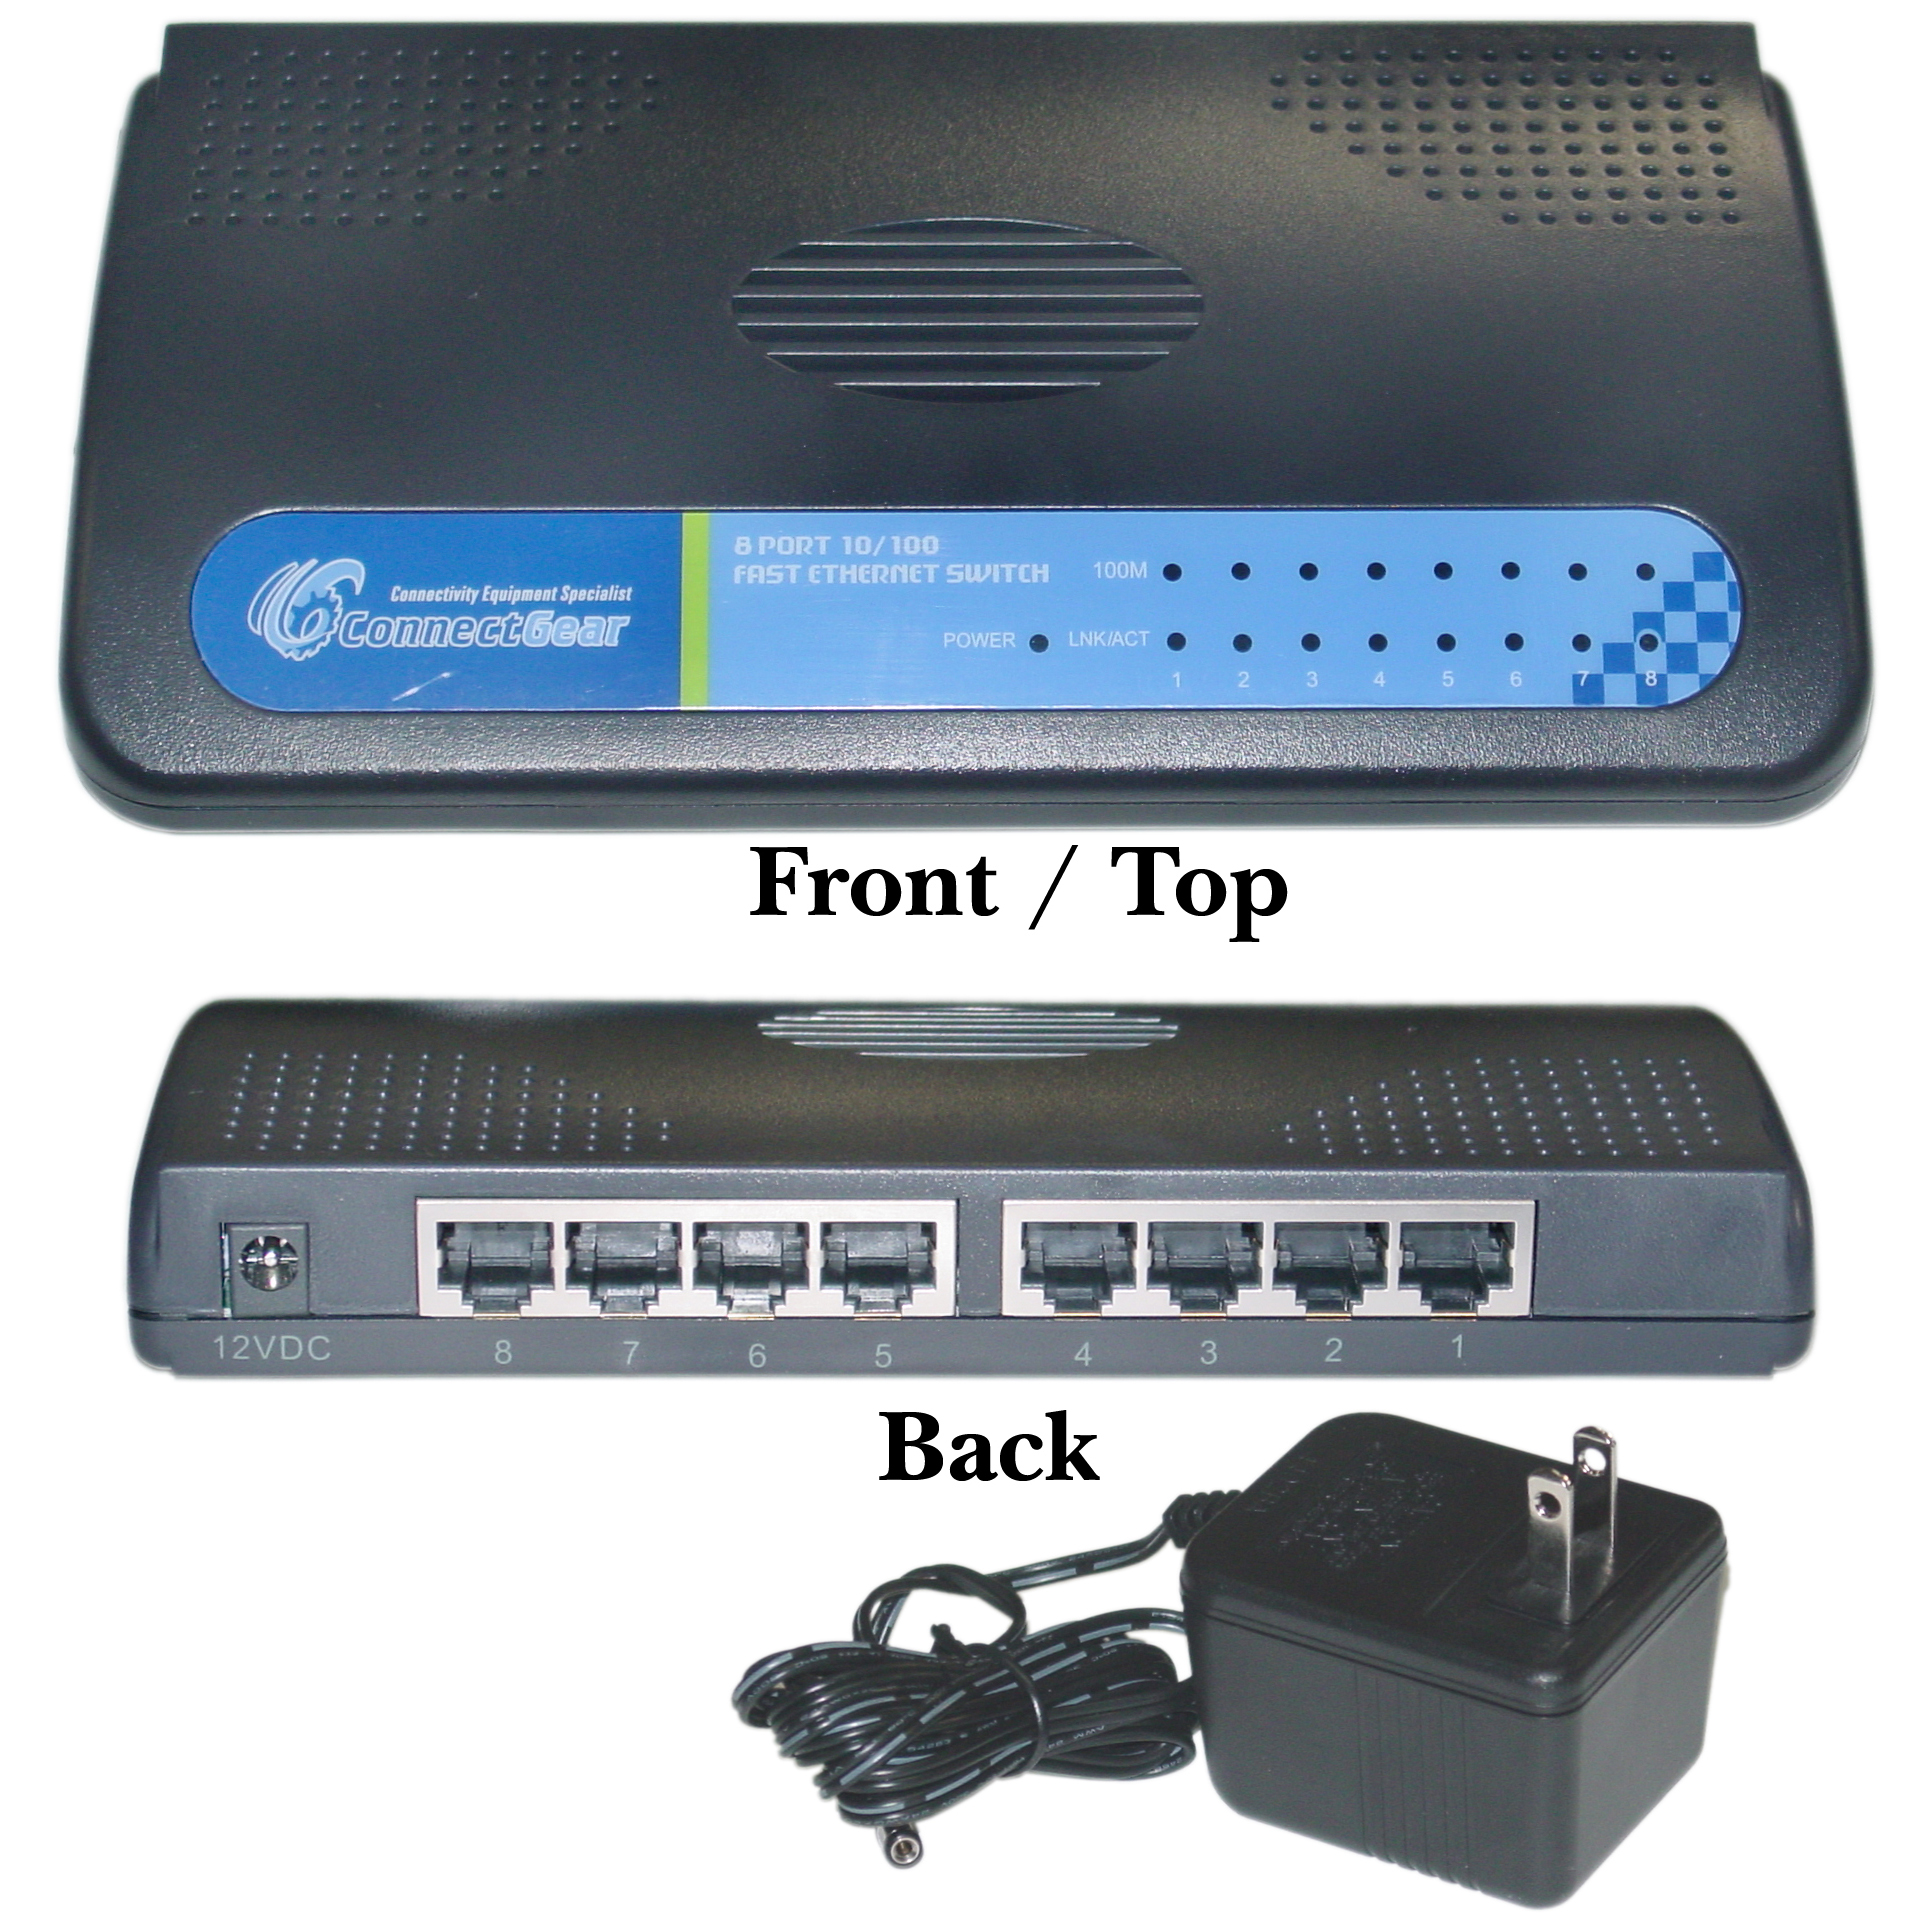 8 port fast ethernet switch 10 100 auto negotiation - 8 port fast ethernet switch ...